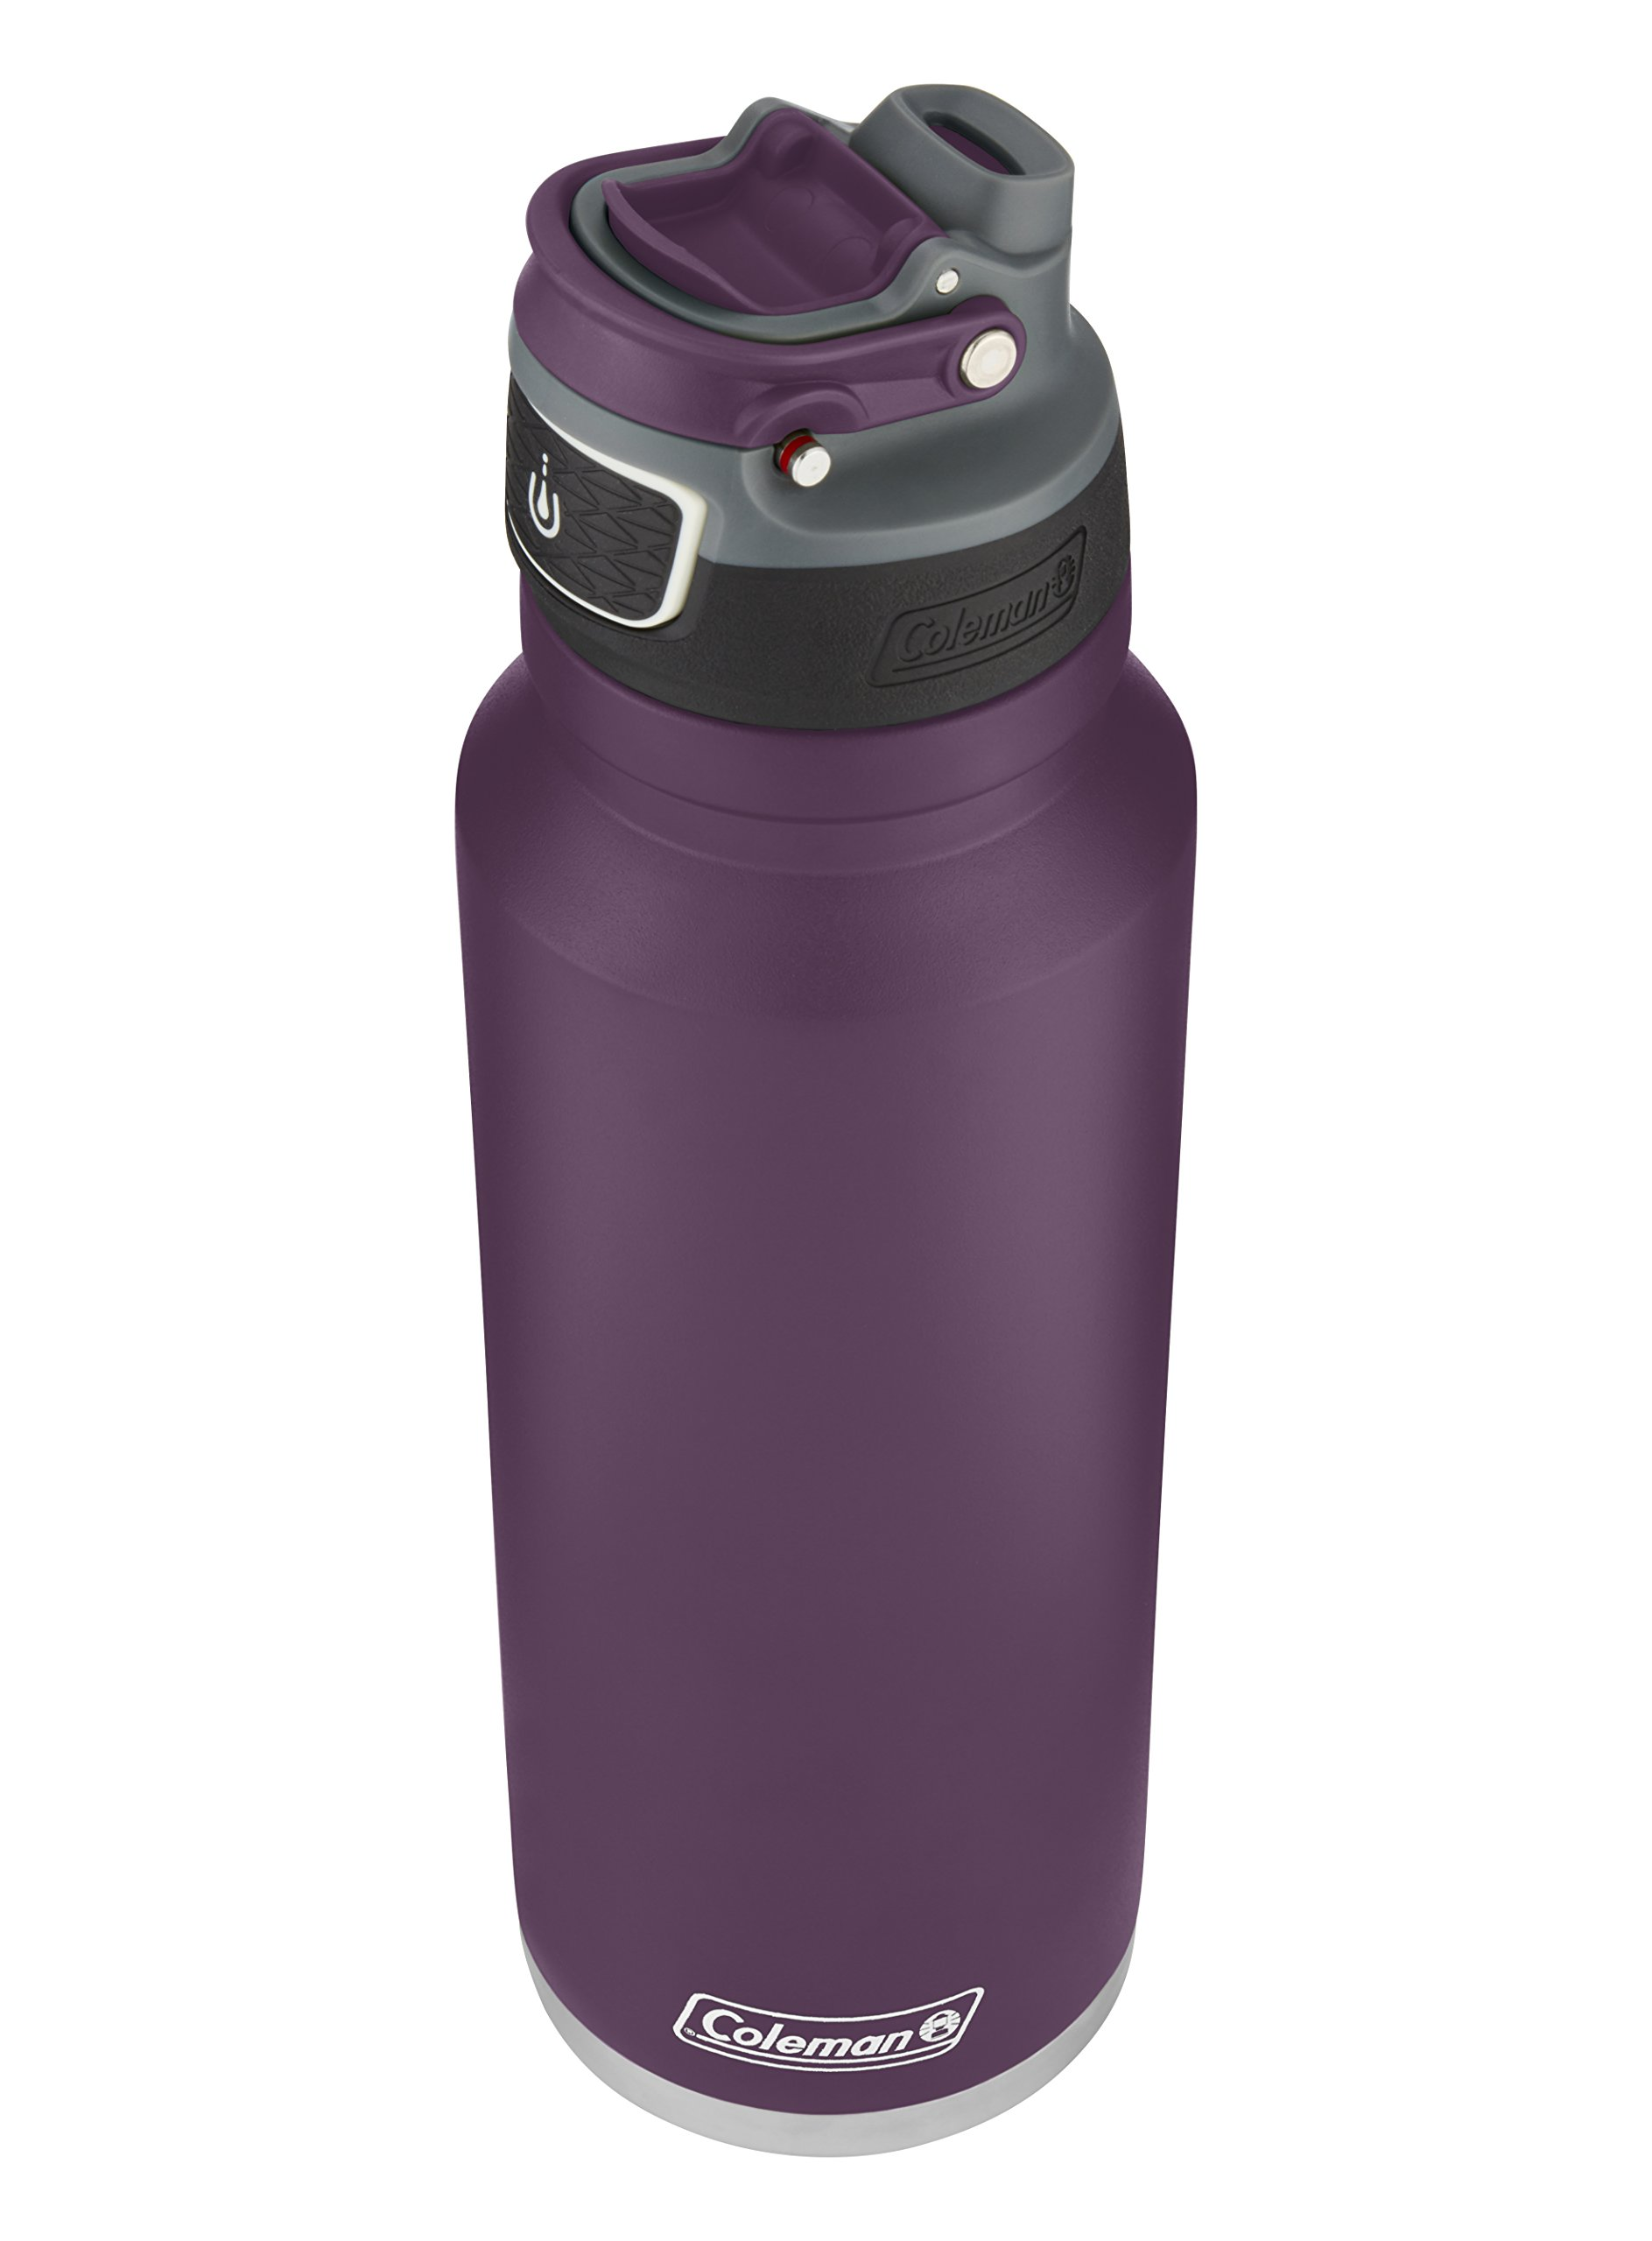 Coleman FreeFlow AUTOSEAL Insulated Stainless Steel Water Bottle, Violet, 40 oz.